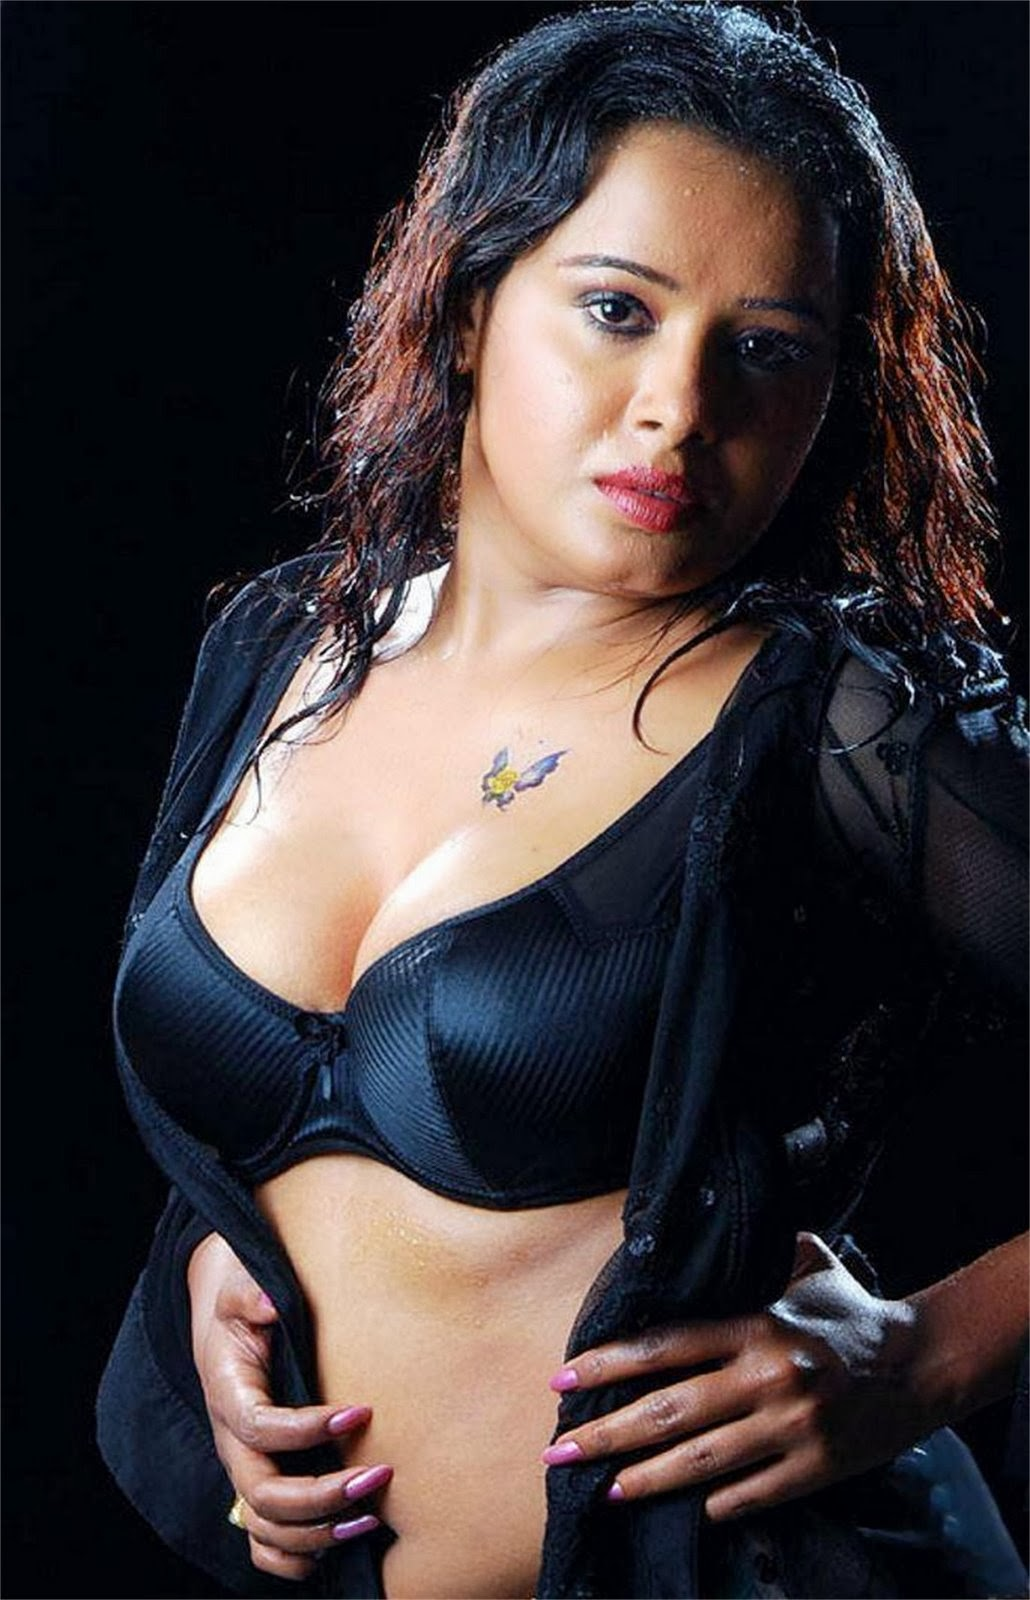 actor pic click hear.................... Bollywood+Sexy+Actress+in+Bikni%252C+Bra+%2526+Pentty+%25284%2529